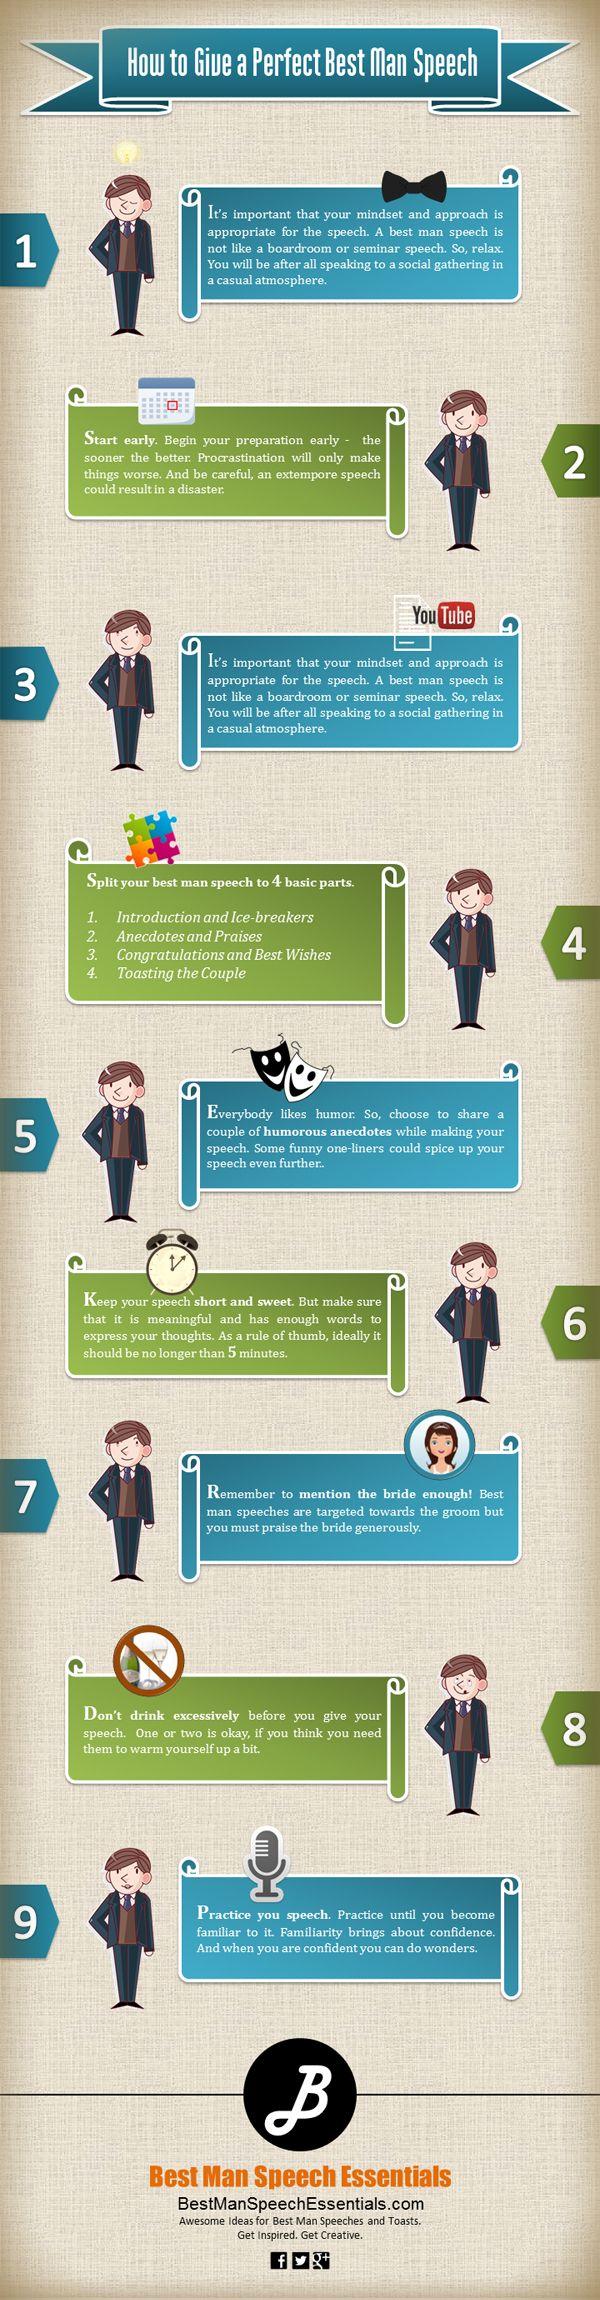 This is an infographic that portrays how to write and give a best man speech fast and easy. There are nine most important points that are mentioned in a short step-by-step method. A lot of best men are scared of making a speech at a wedding reception. A picture is worth a thousand words - so, hopefully best men are going to have fun learning this way and it's going to give them some ideas to make their speeches stand out.